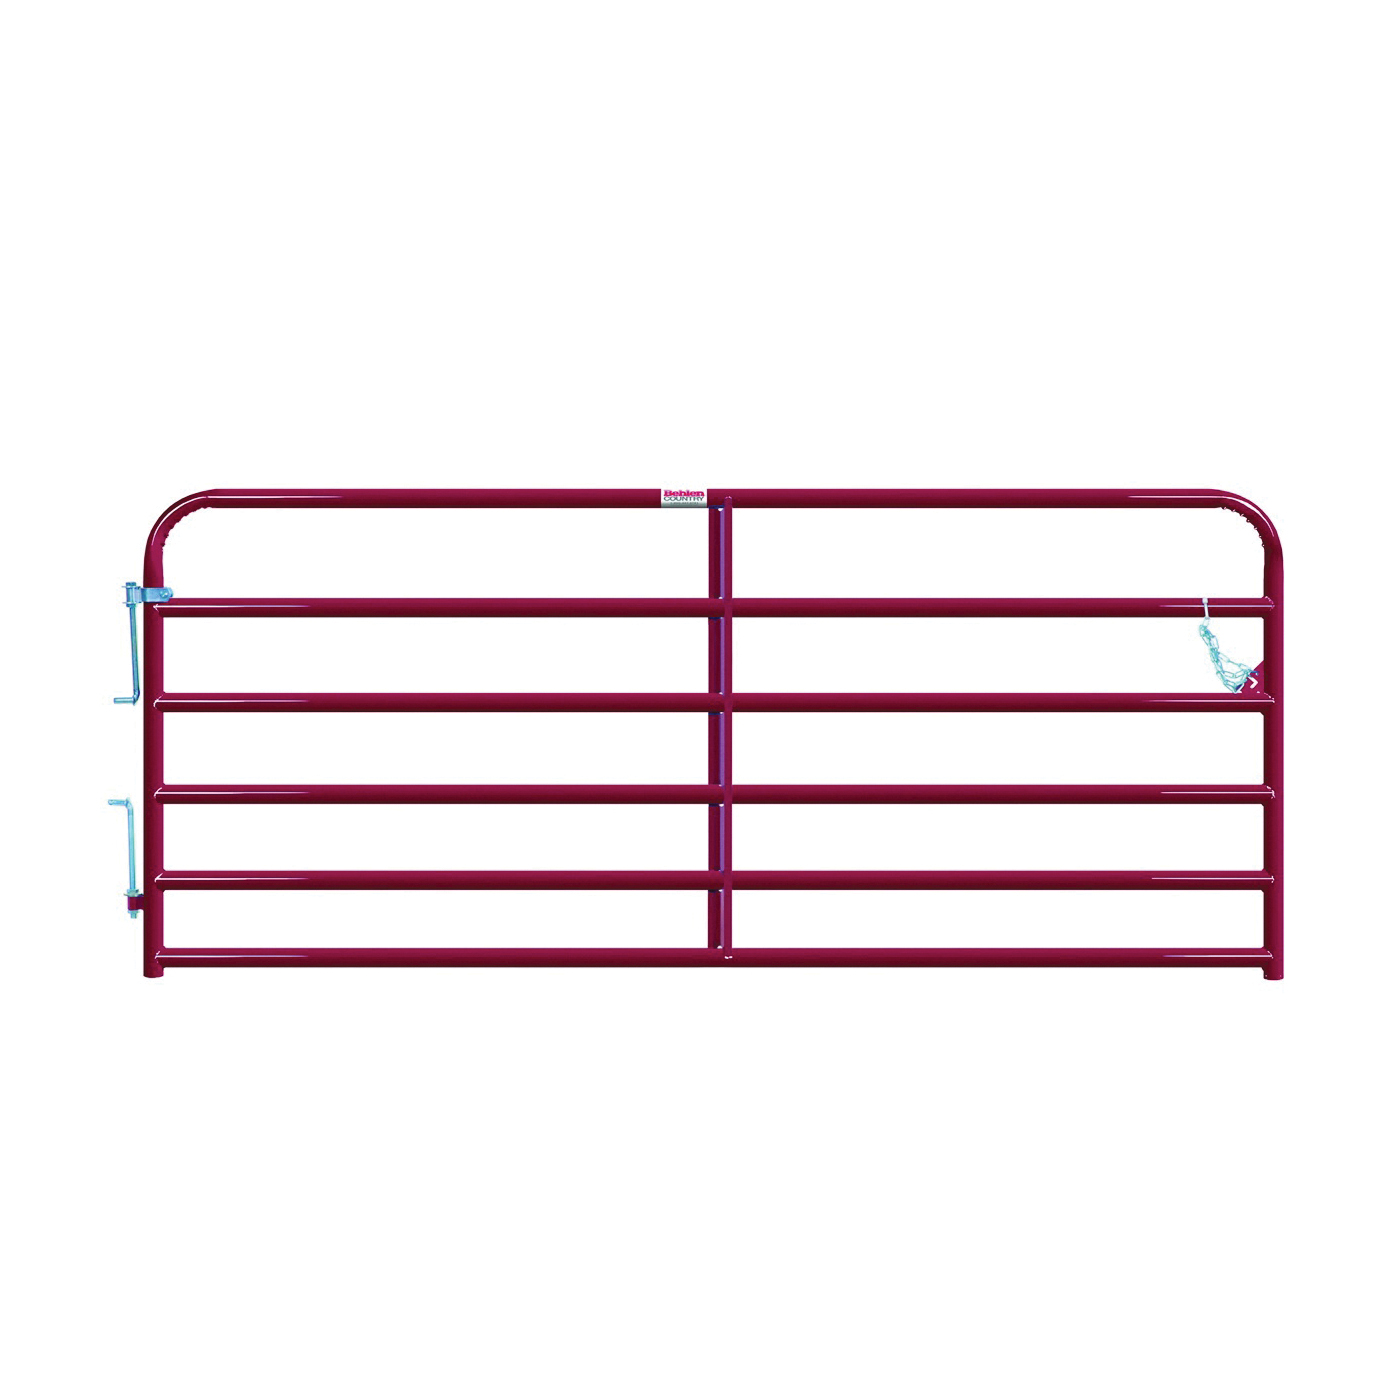 Picture of Behlen Country 40120101 Bull Gate, 120 in W Gate, 50 in H Gate, 16 ga Frame Tube/Channel, Steel Frame, Red